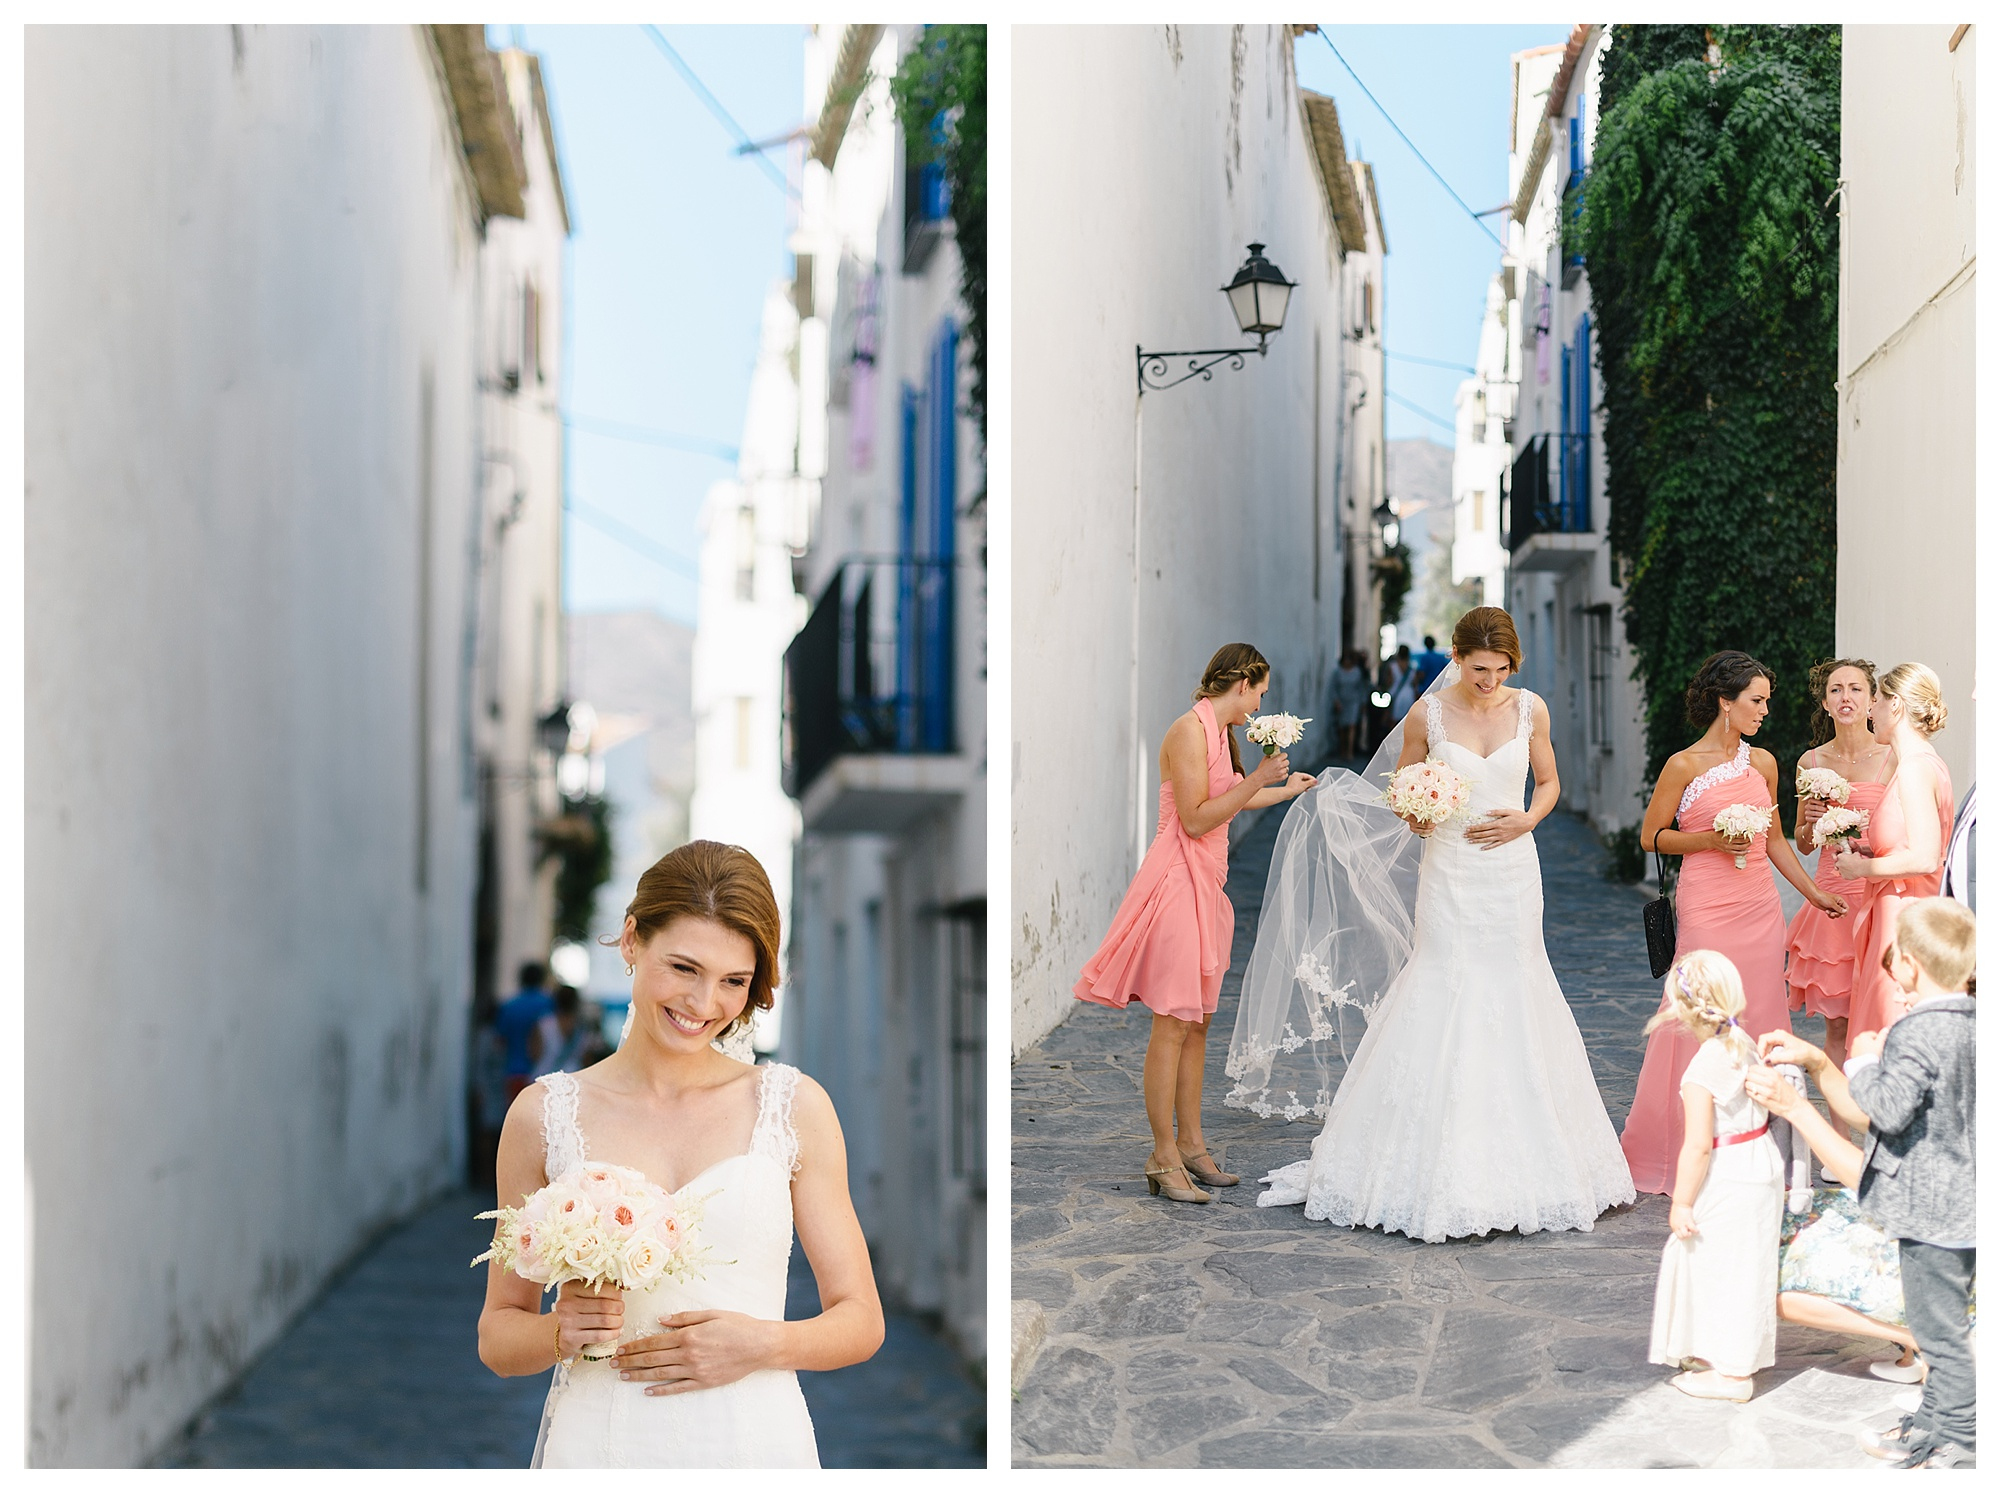 Fotograf Konstanz - Wedding Spain Cadaques Elmar Feuerbacher Photography 13 - Als Destination Wedding Fotograf in Cadaqués, Spanien  - 13 -